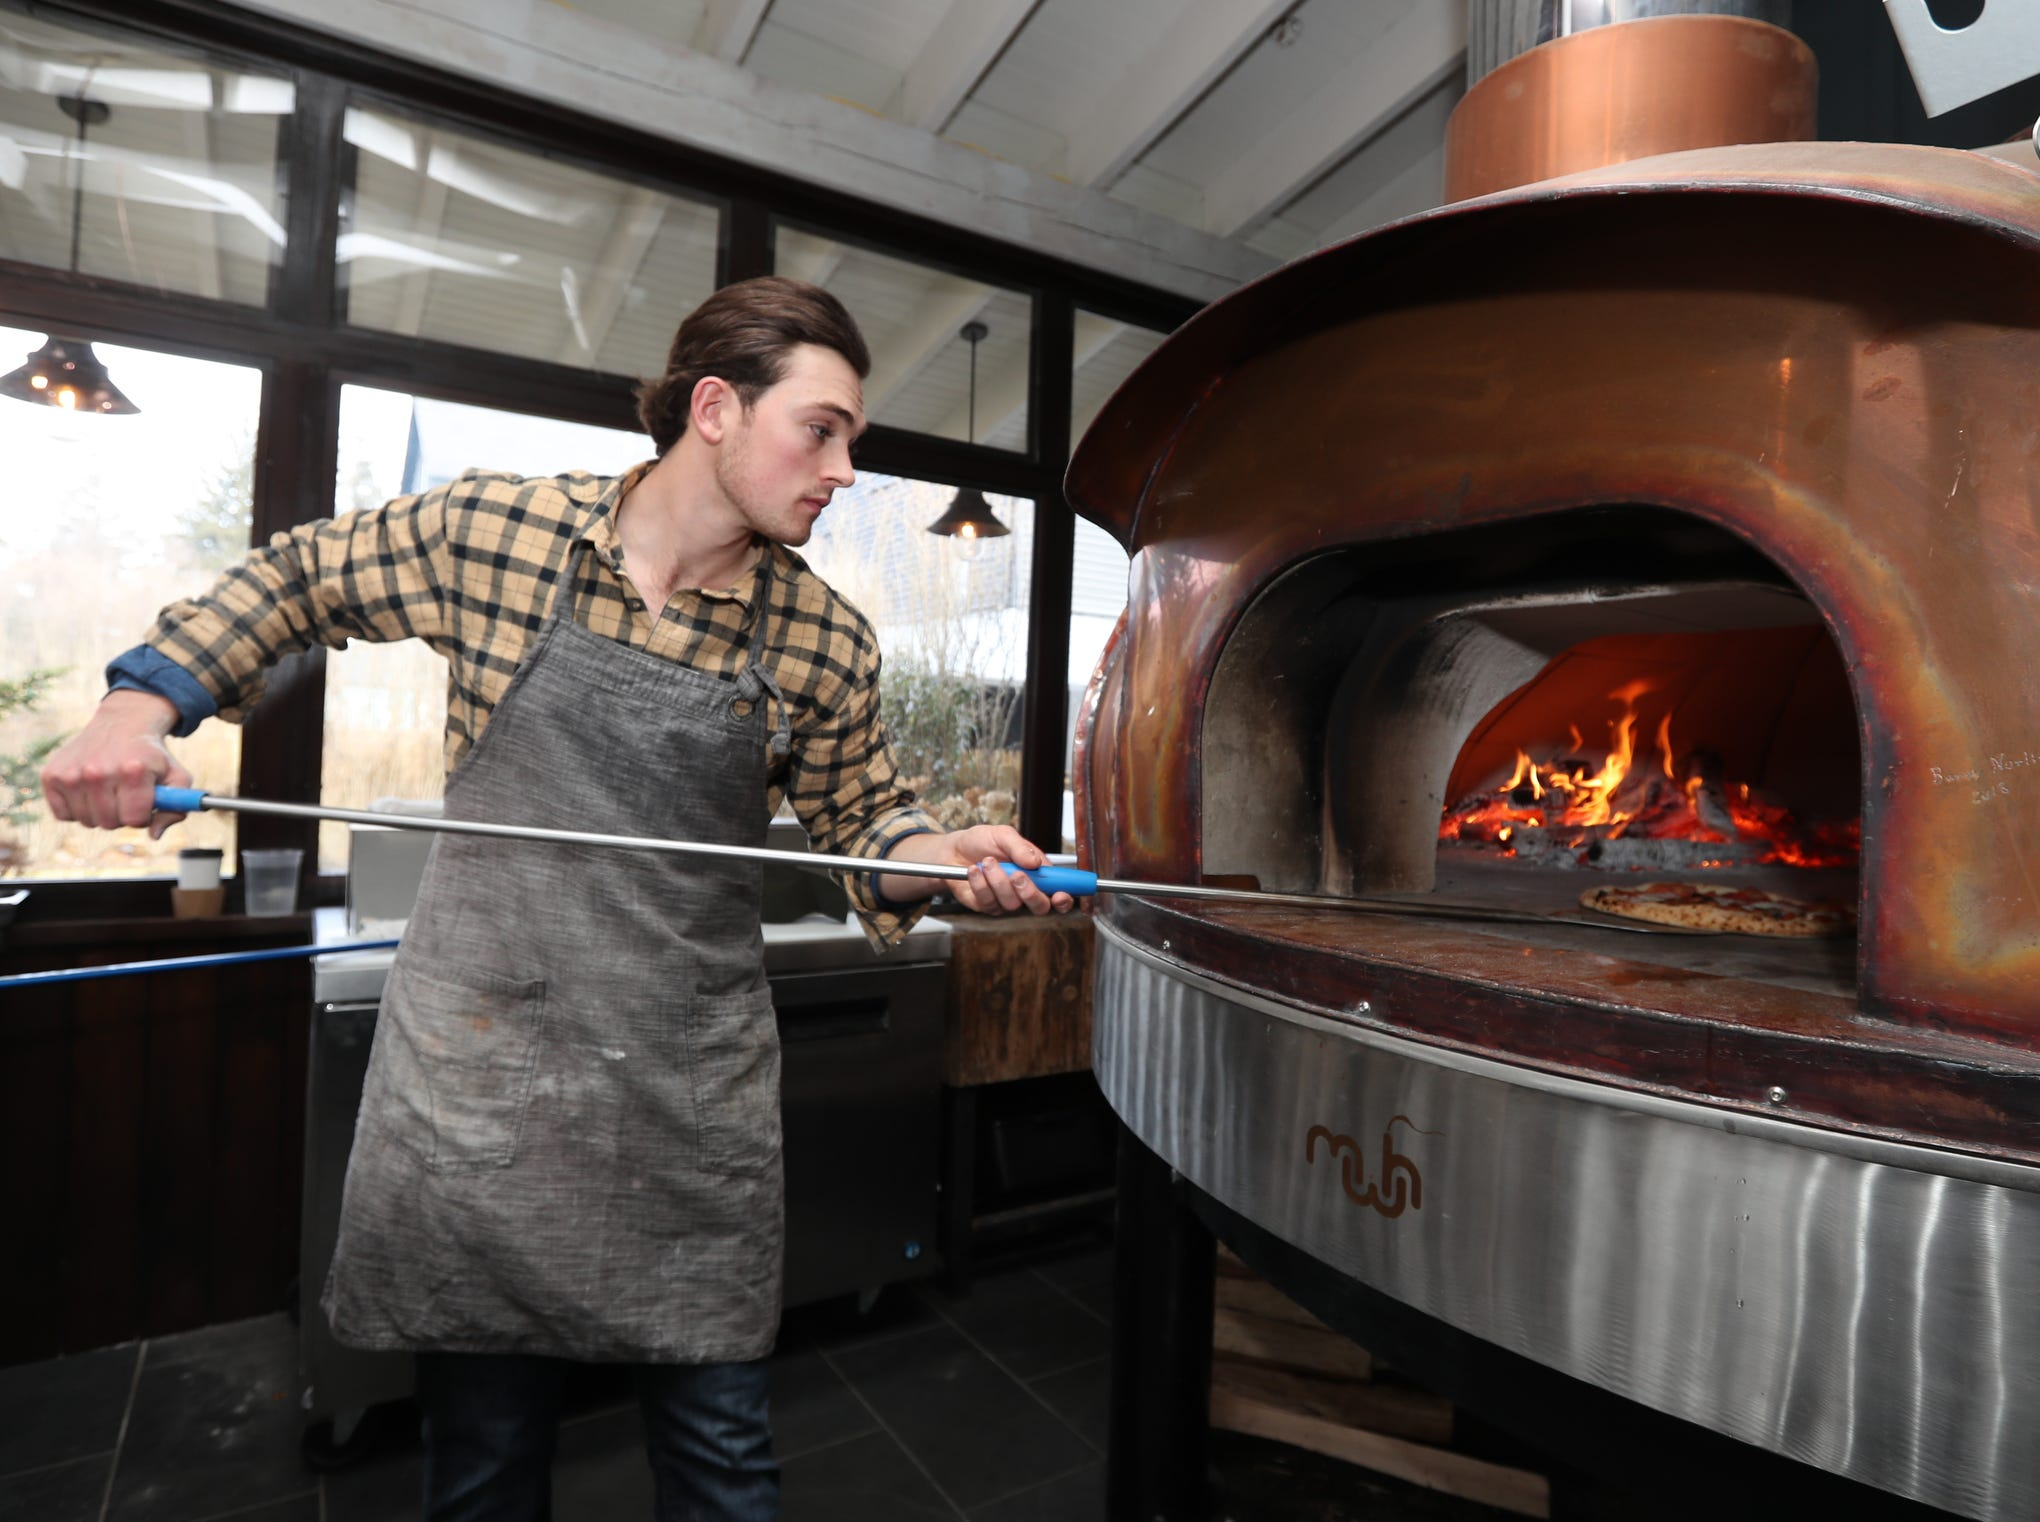 Pizza chef Chase Fox Harnett pulls a pizza from the wood fired oven at the Valley Rock Inn & Mountain Club in Sloatsburg on Saturday, January 12, 2019.